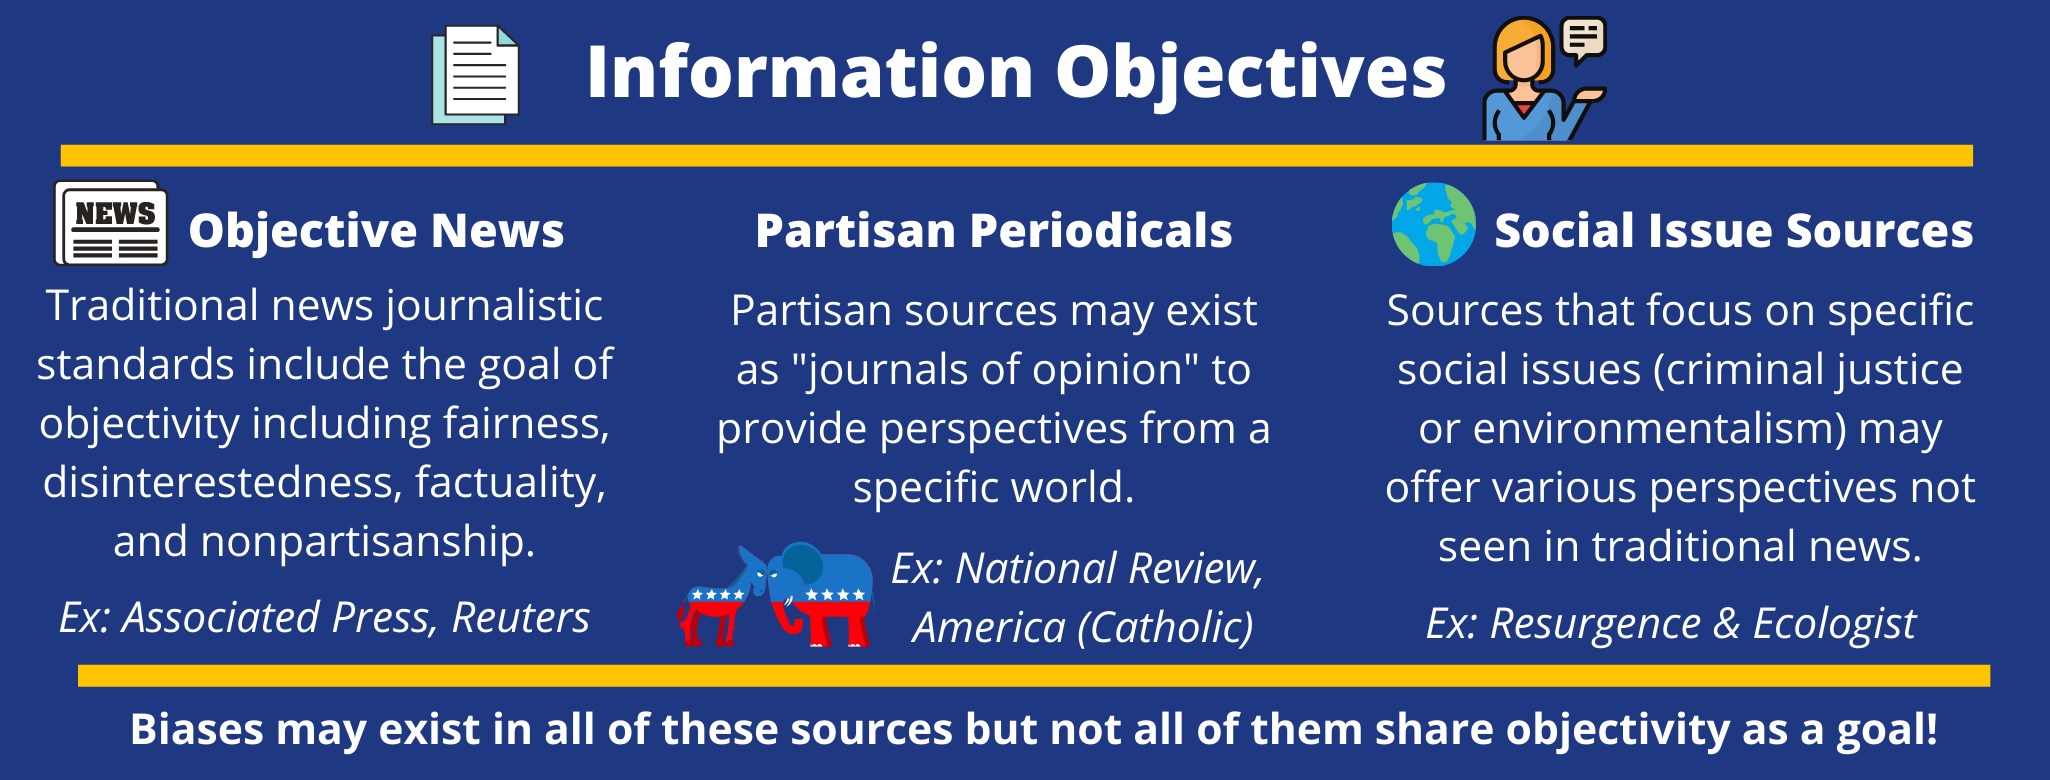 Graphic says information objectives and provides definitions of objective news, partisan periodicals and social issue sources